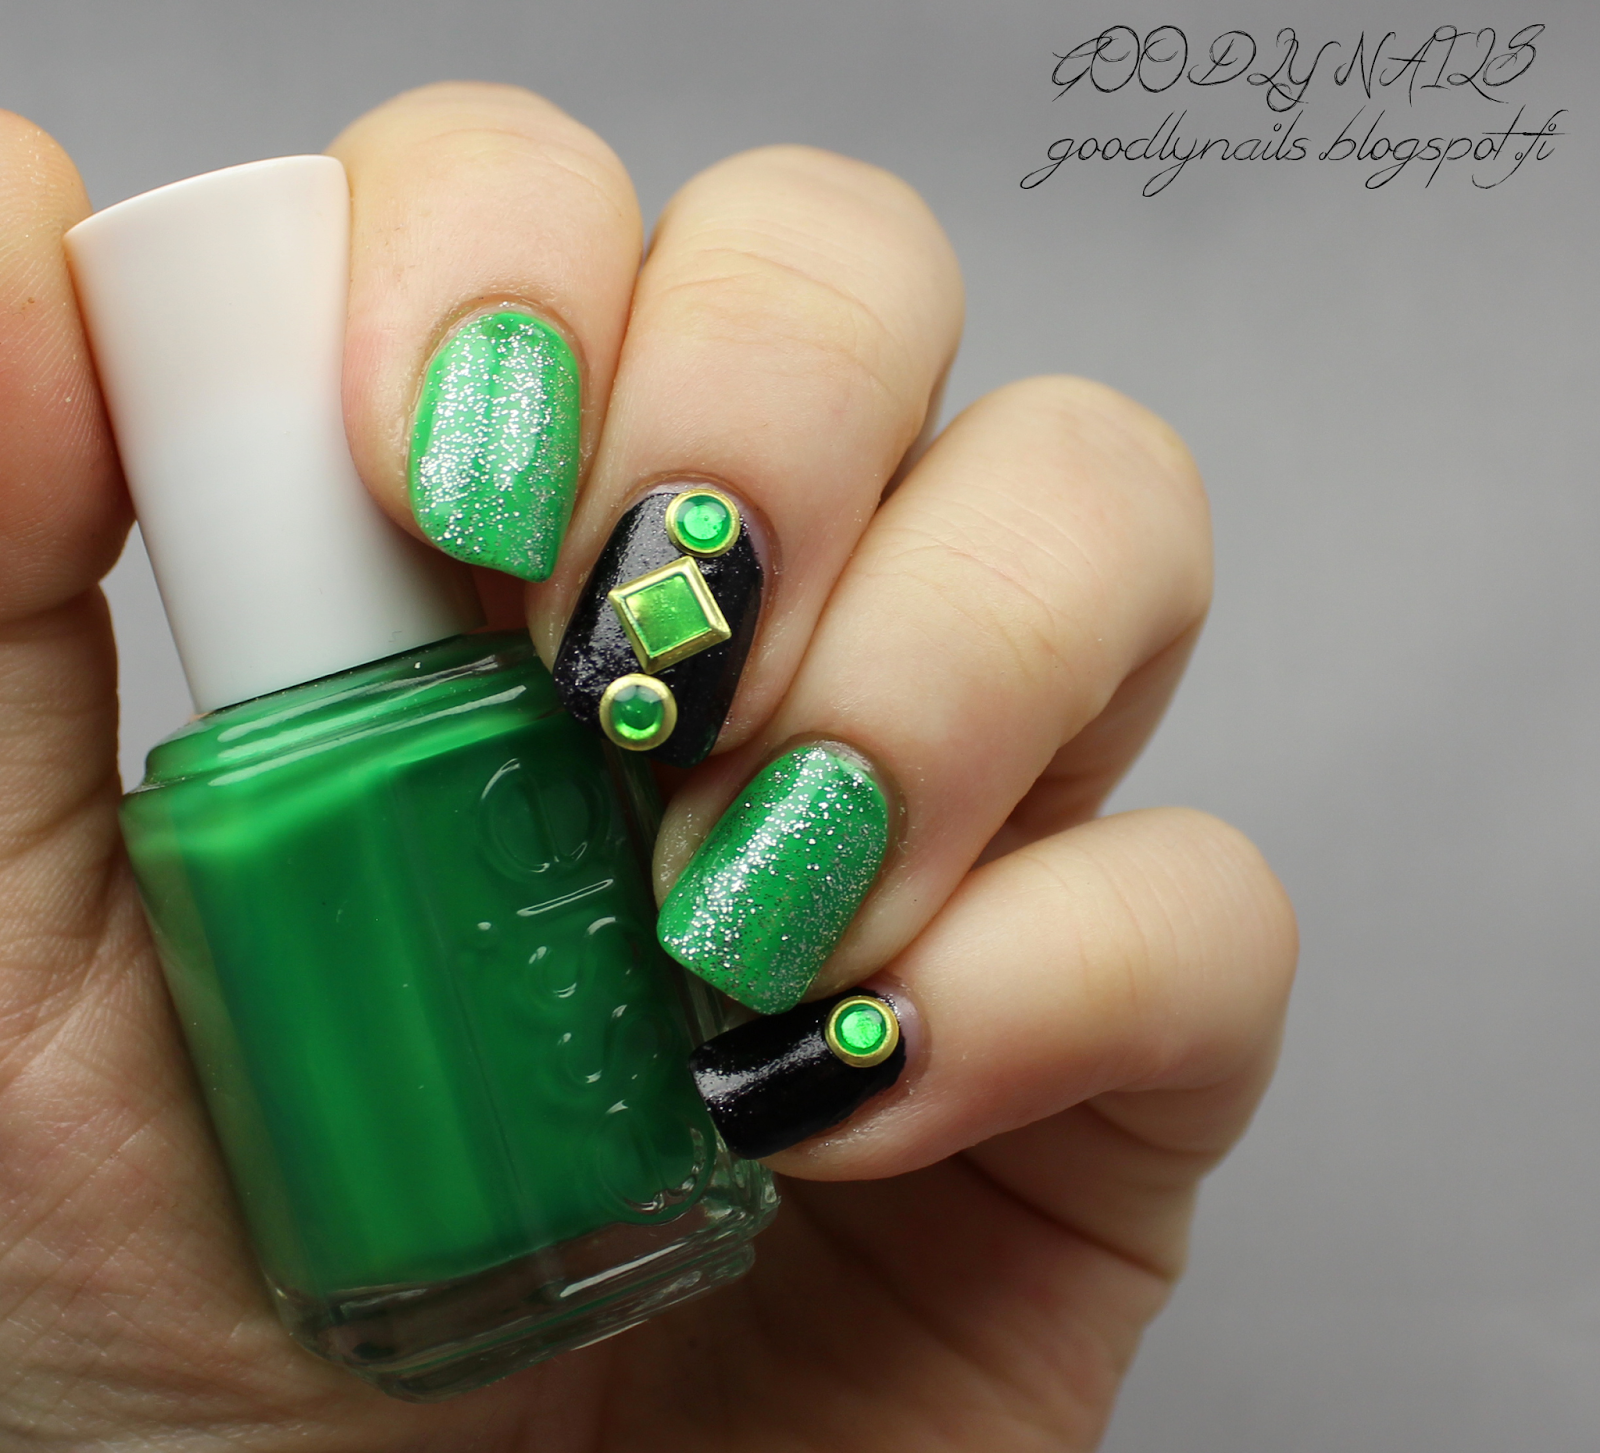 Goodly Nails: BPS koristehyrrä 15332